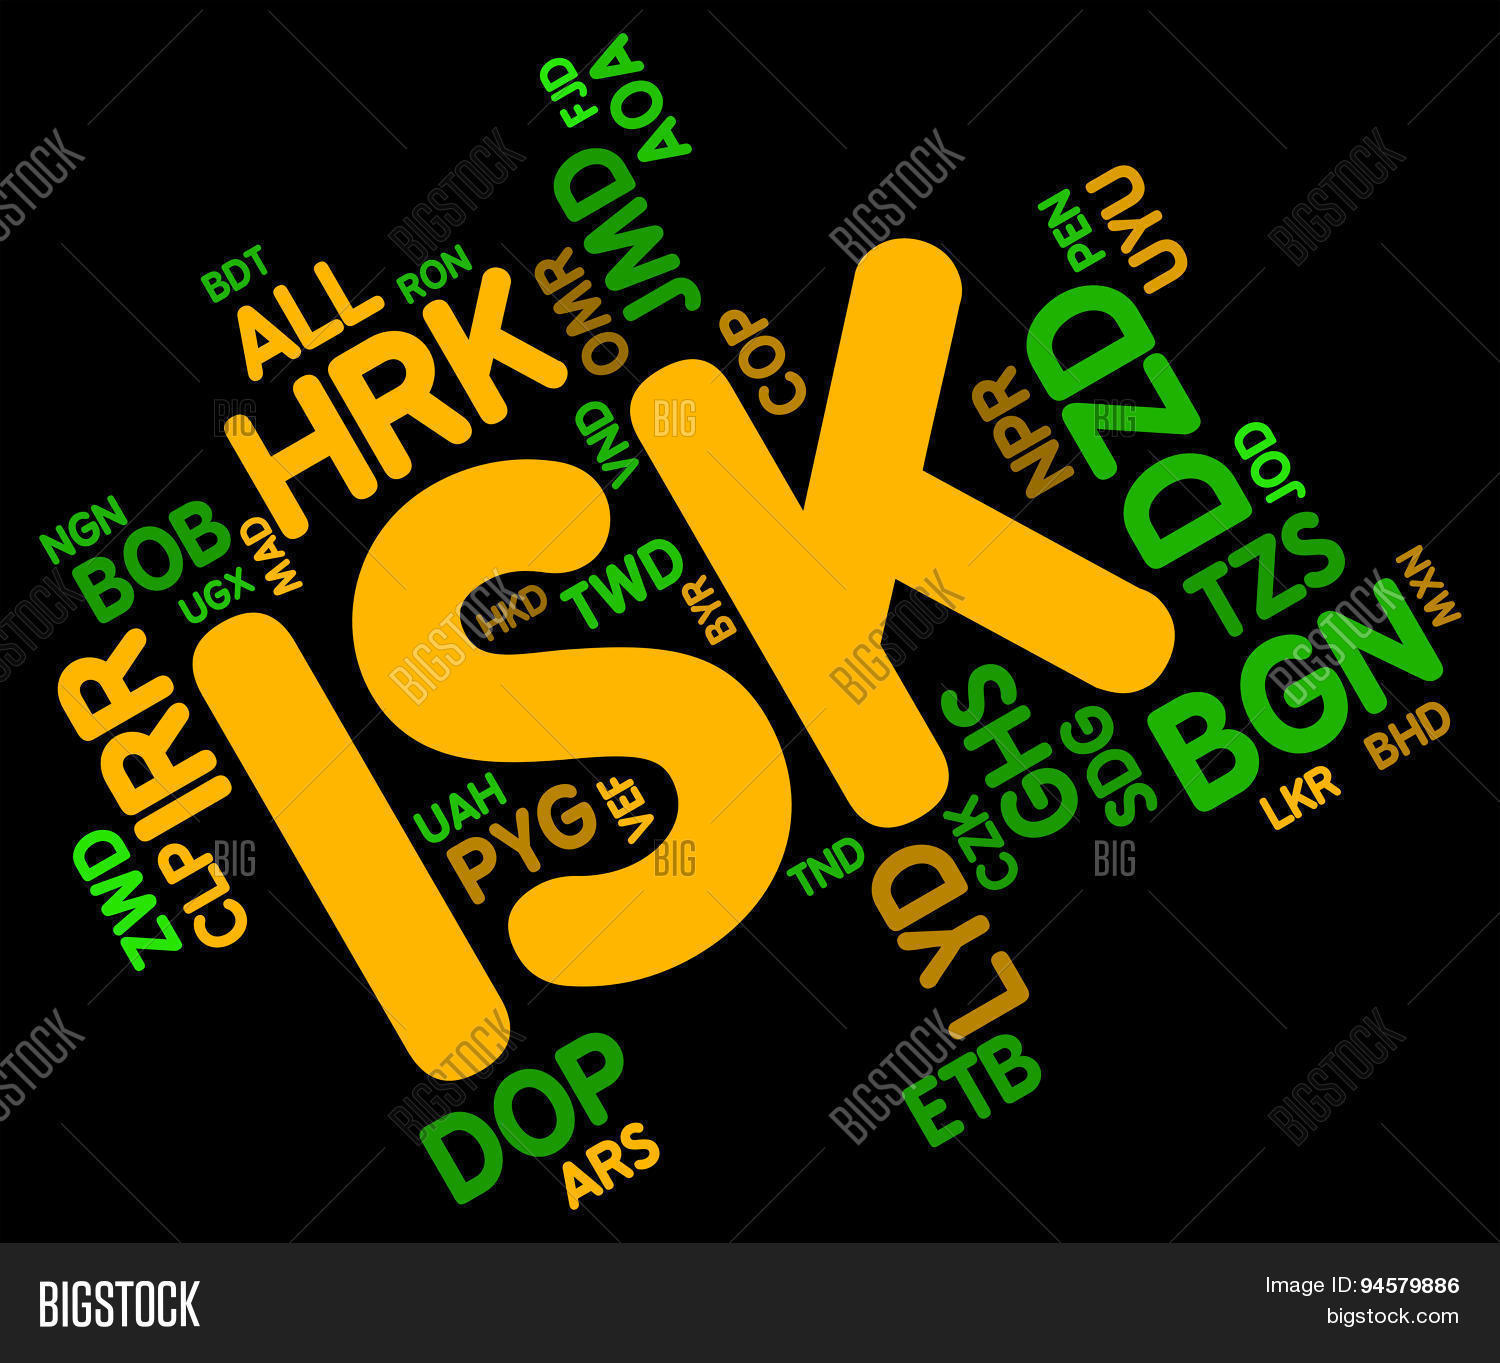 Isk Currency Means Image Photo Free Trial Bigstock